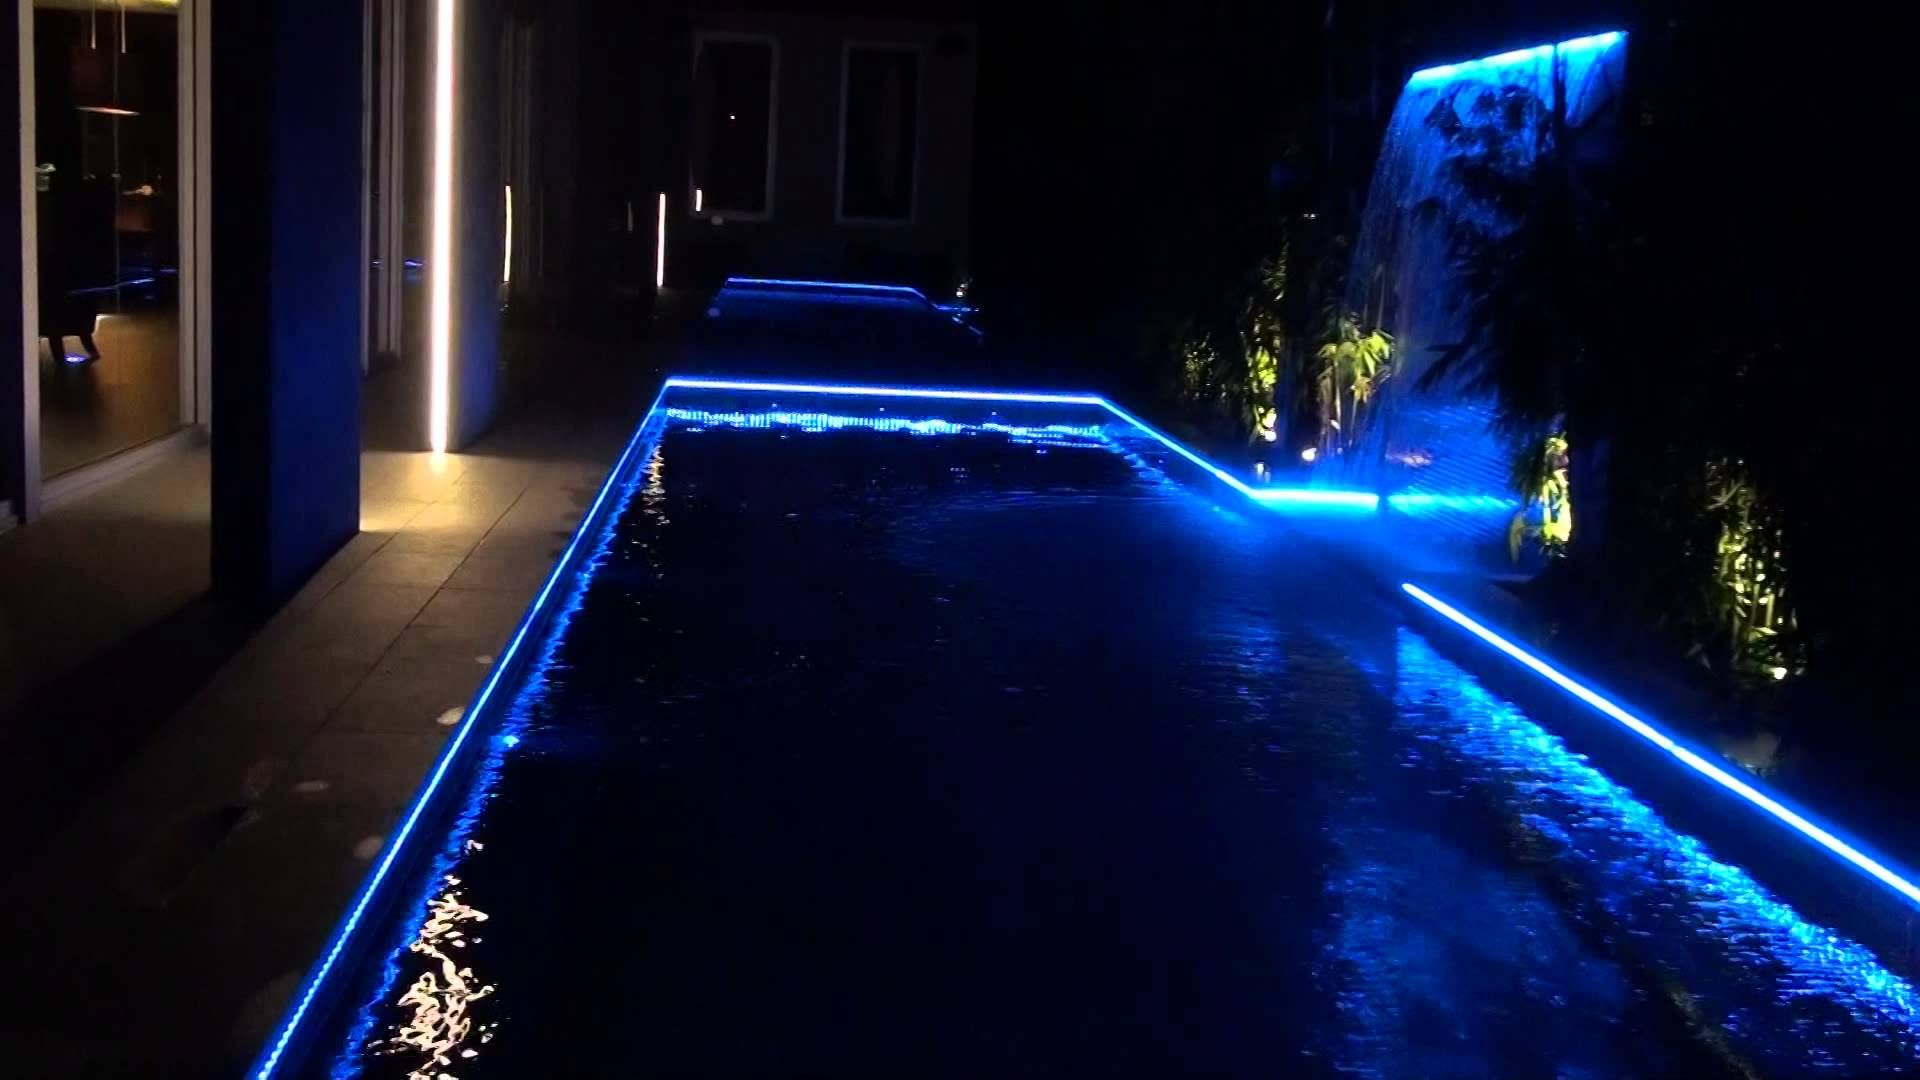 Pool Lighting LED Strip Light | Simple Hardware Visual in ...